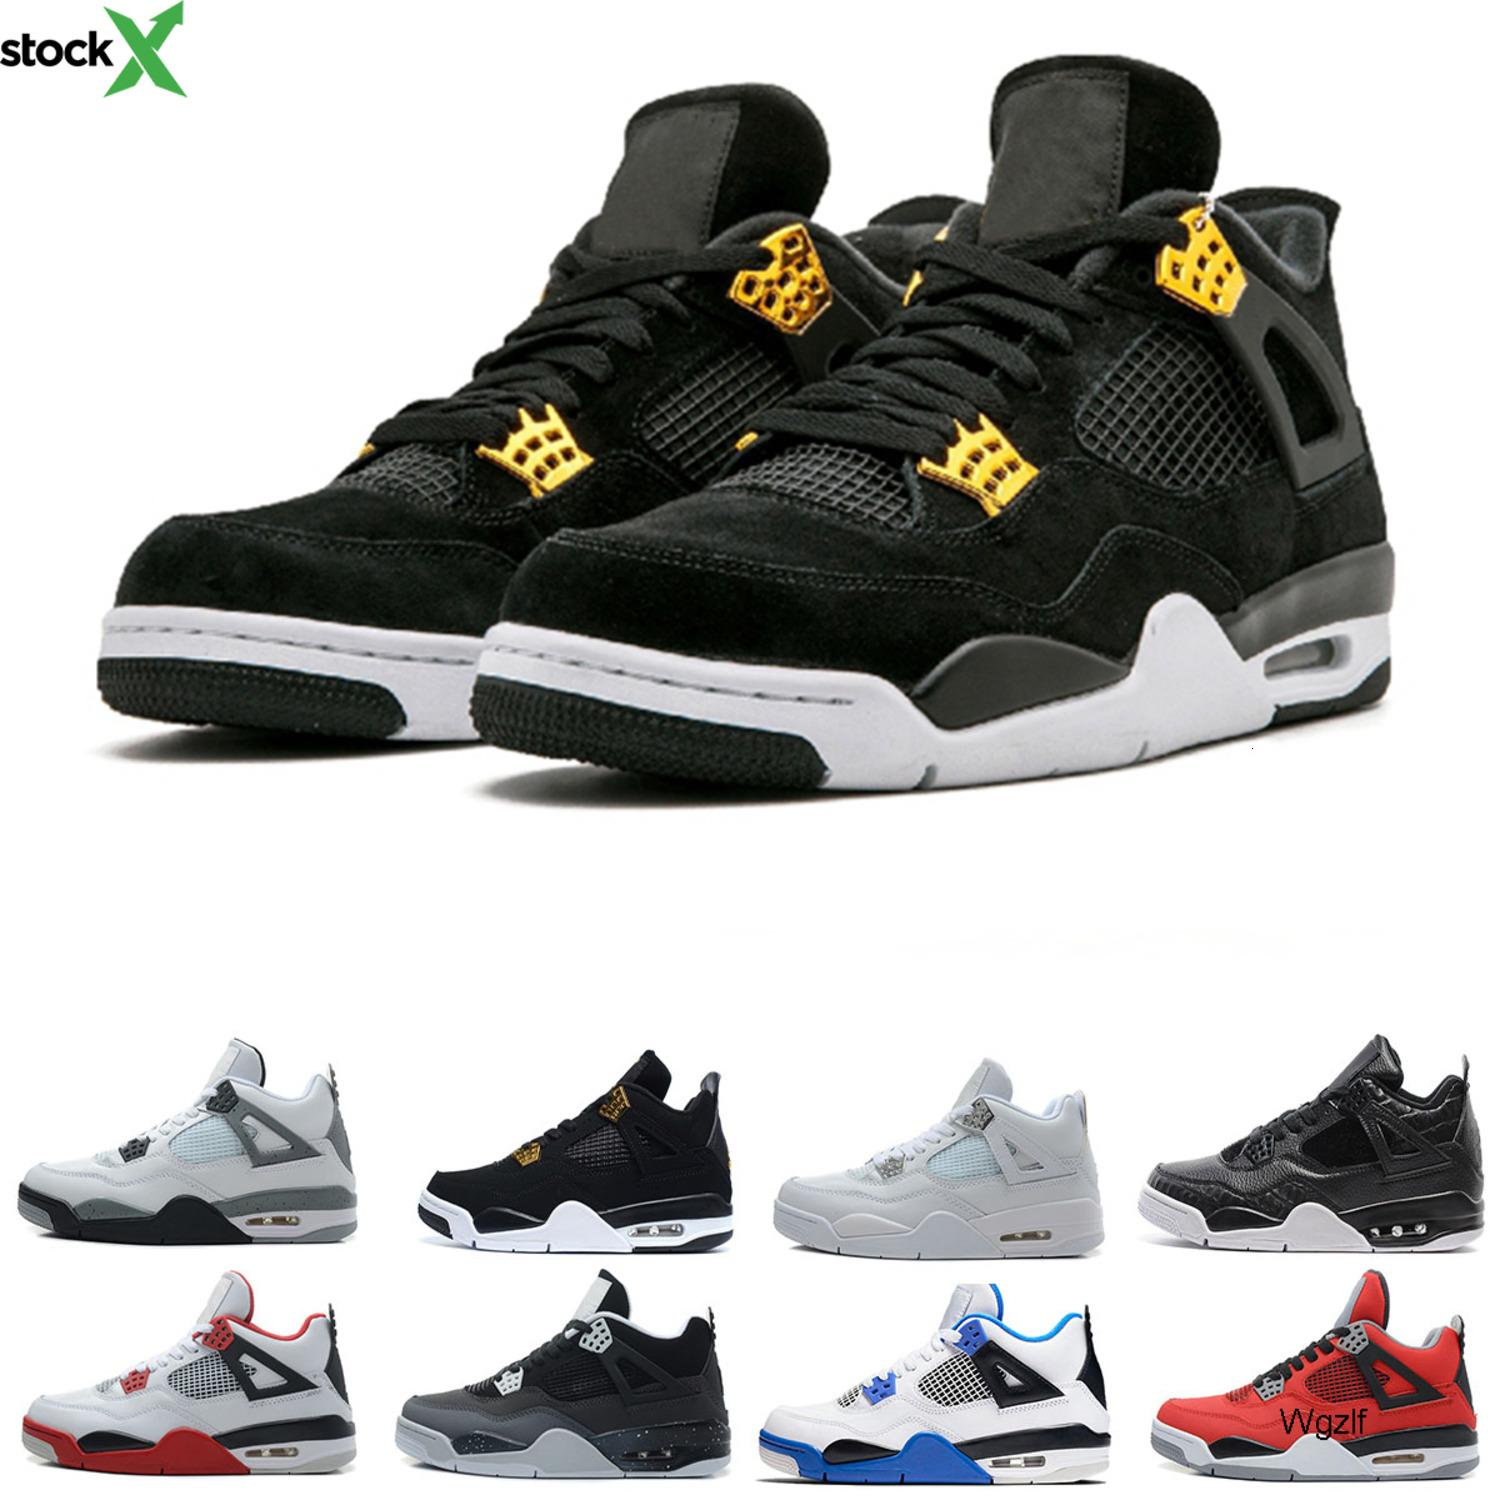 Drop shipping 4 Cactus Jack Jordon Basketball Shoes for men Pure Money Royalty White Cement Raptors Bred Military Blue mens Sport Sneakers